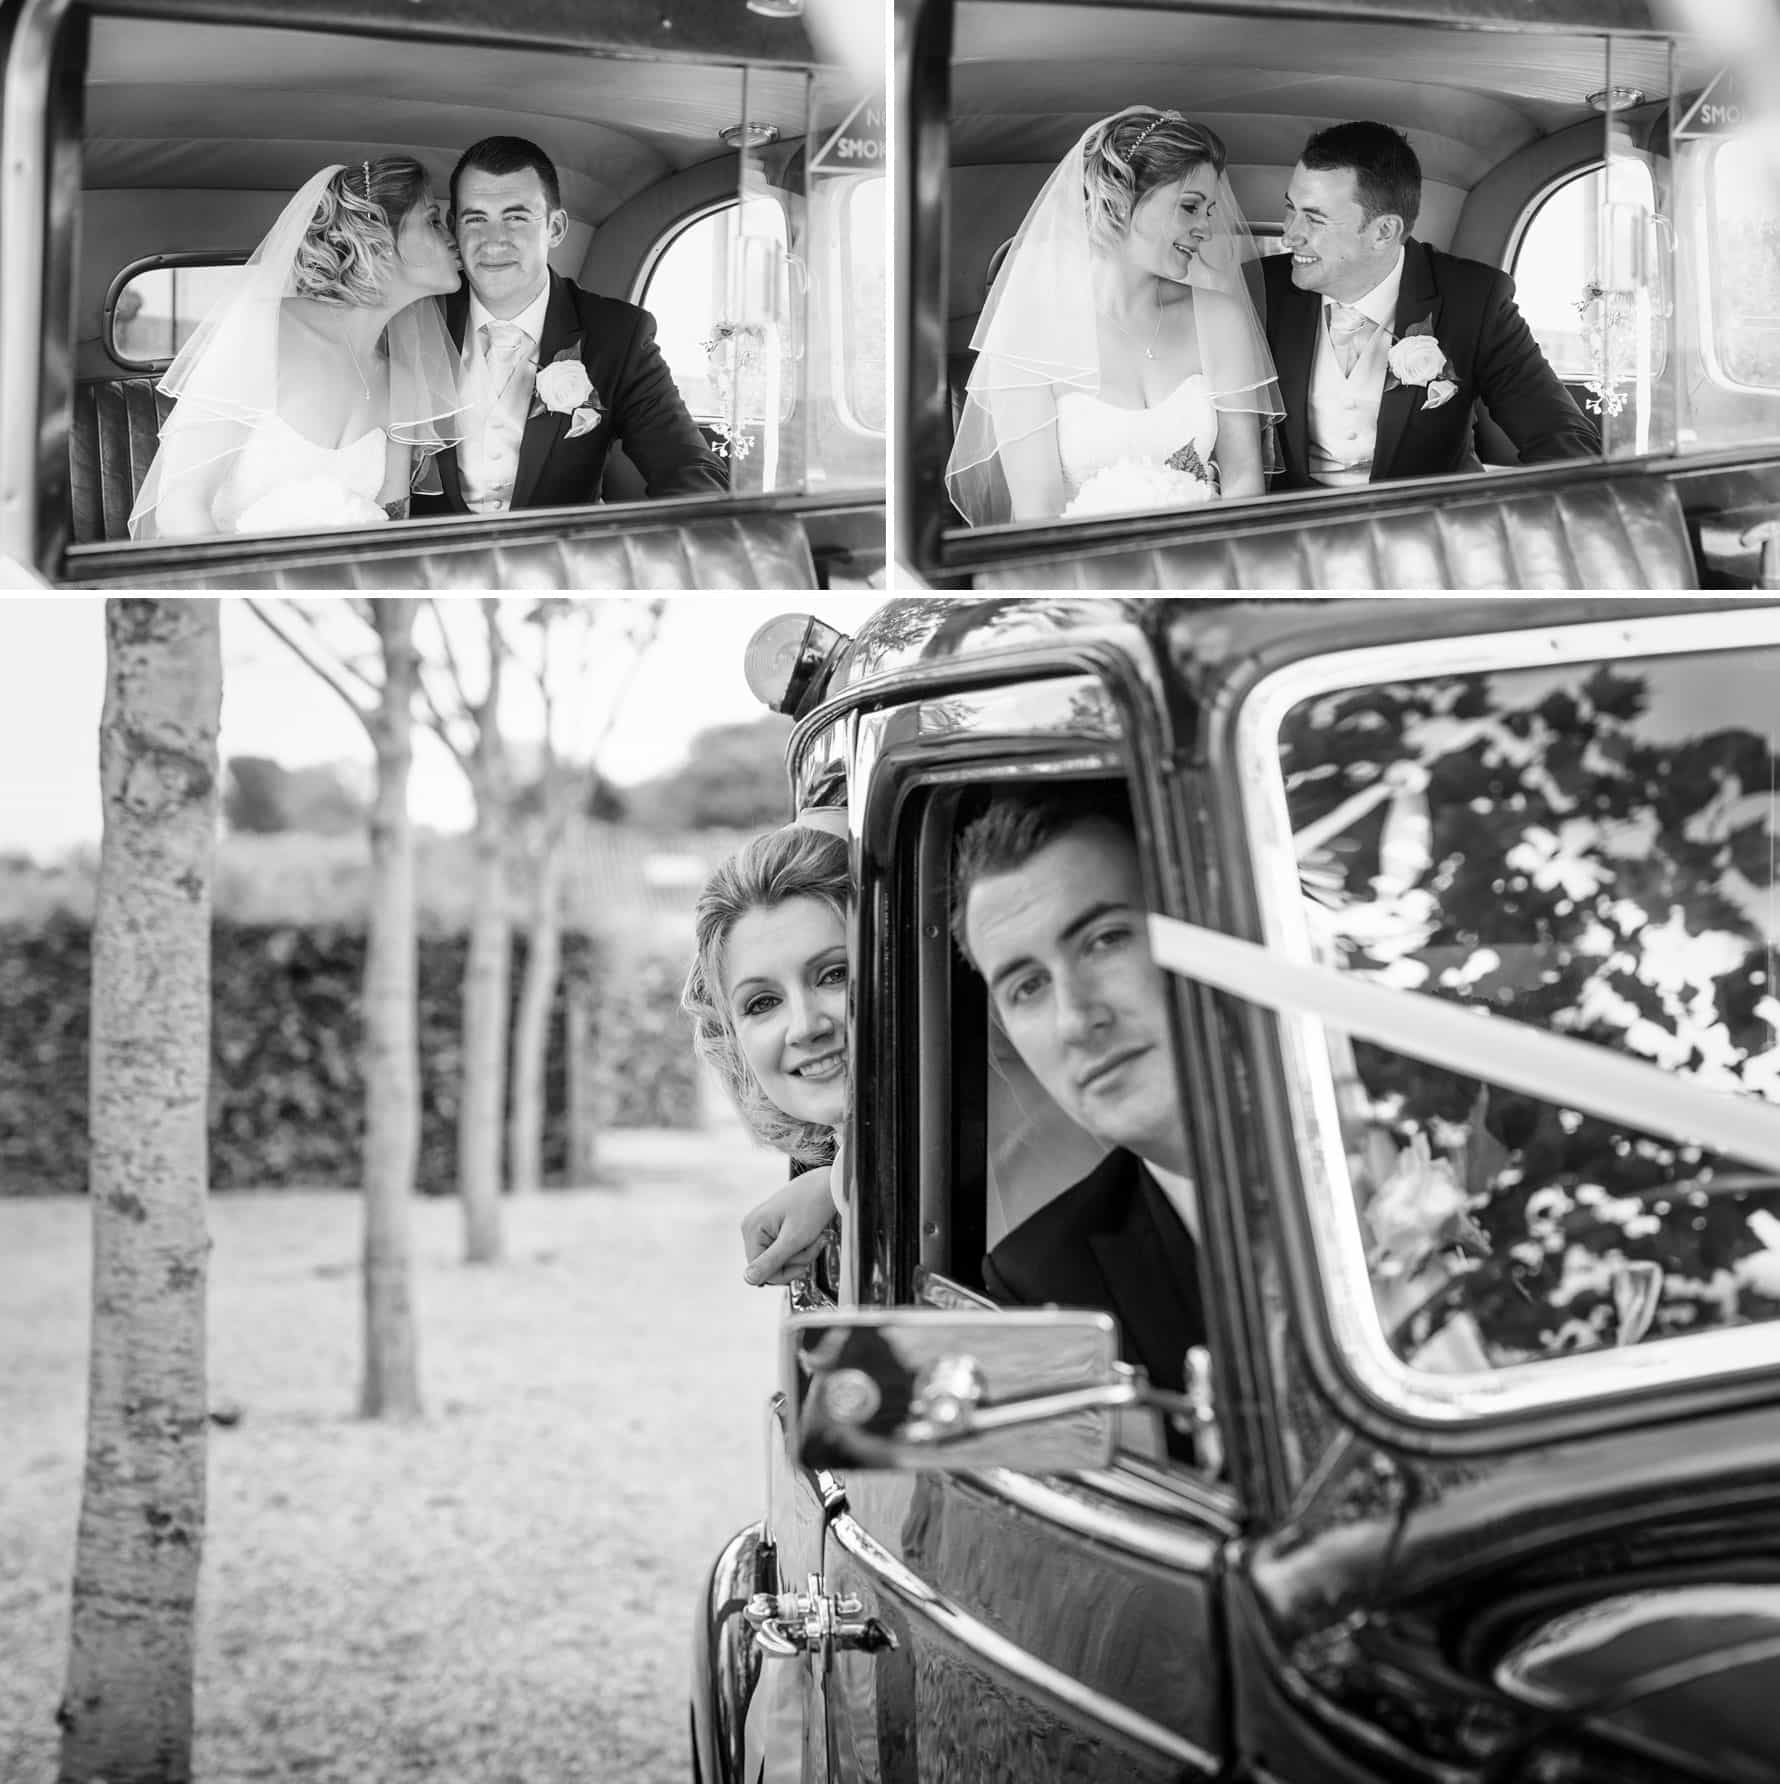 Documentary wedding photography at The Barn at Bury Court